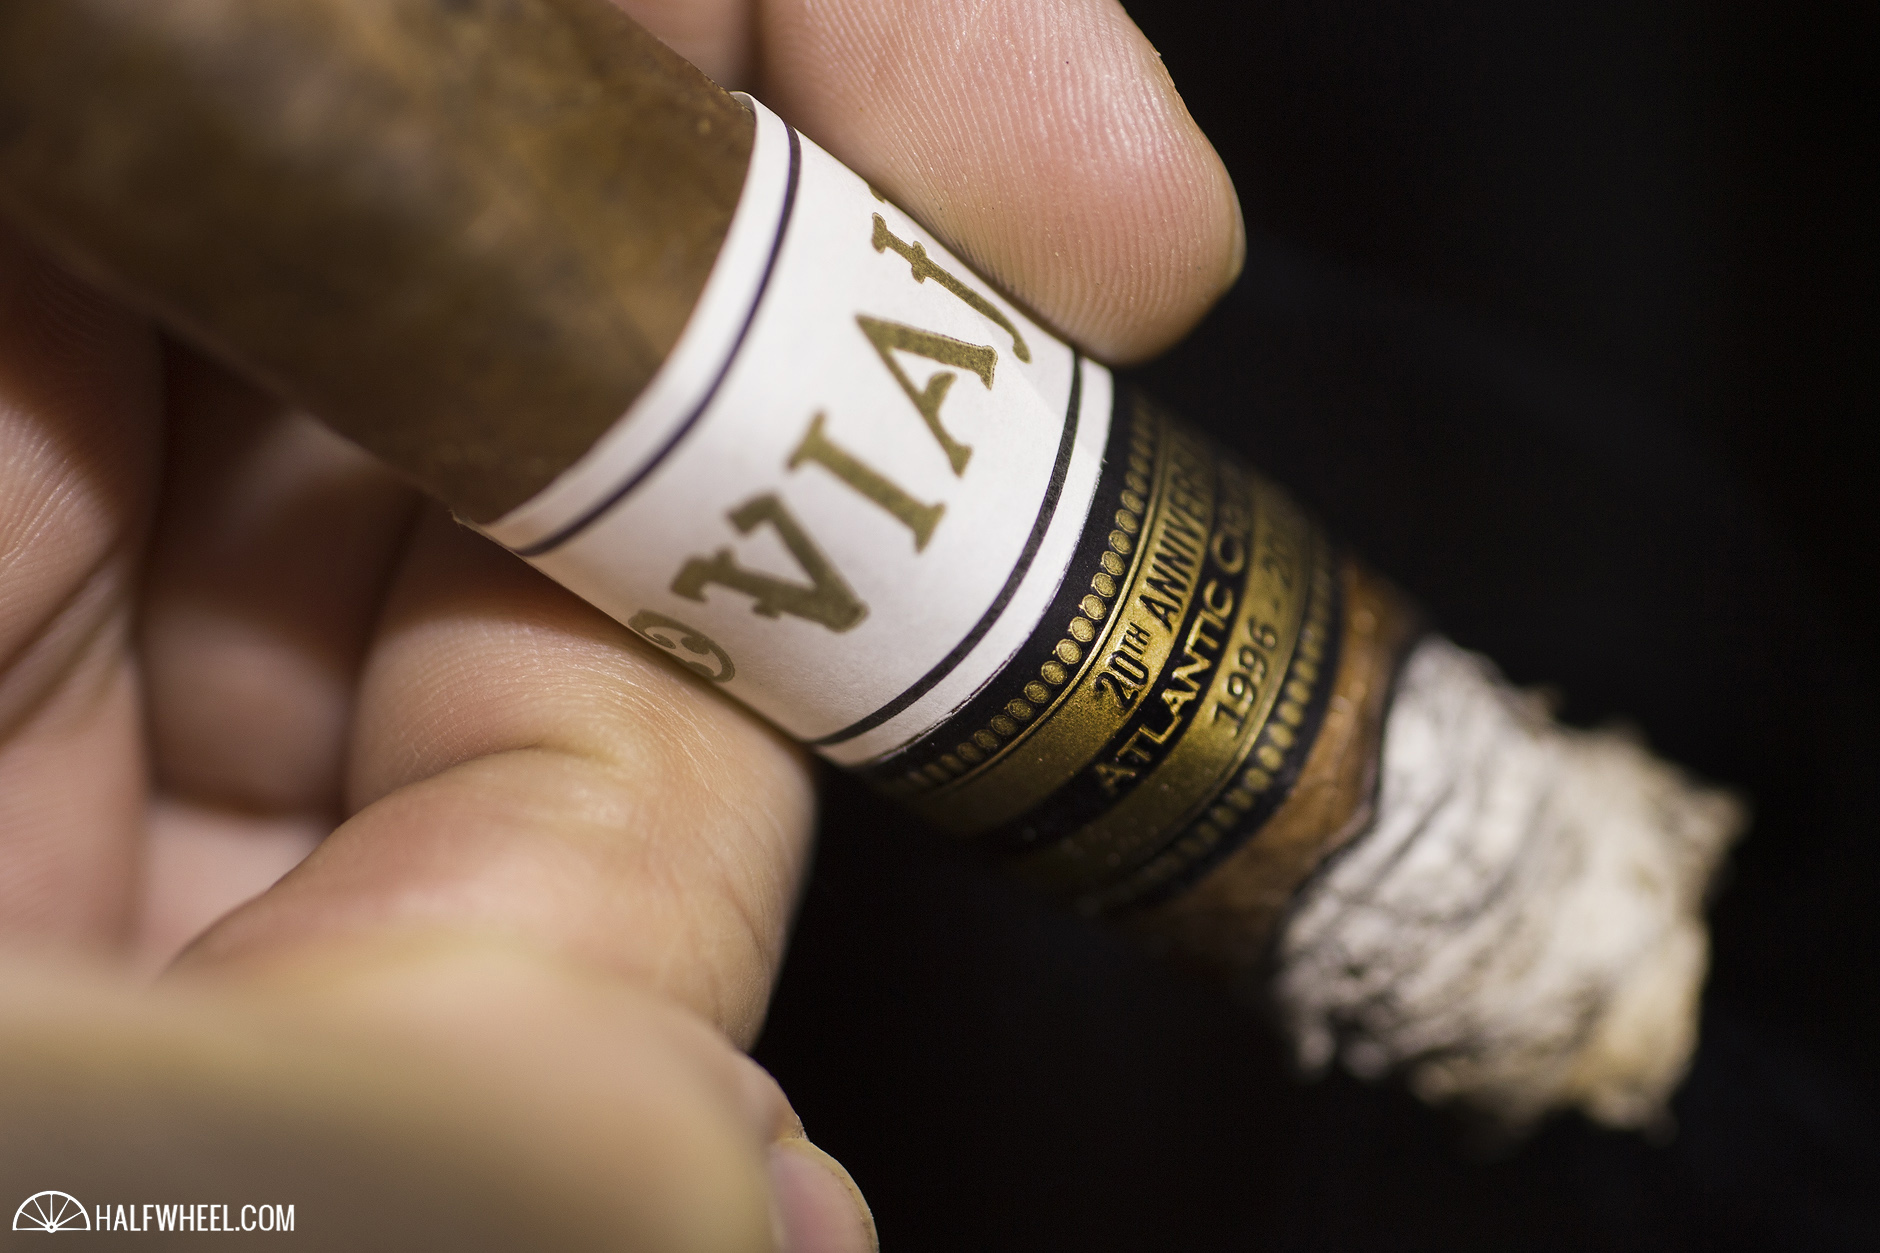 Viaje Atlantic 20th Anniversary WLP 20th Limited Edition Toro 3